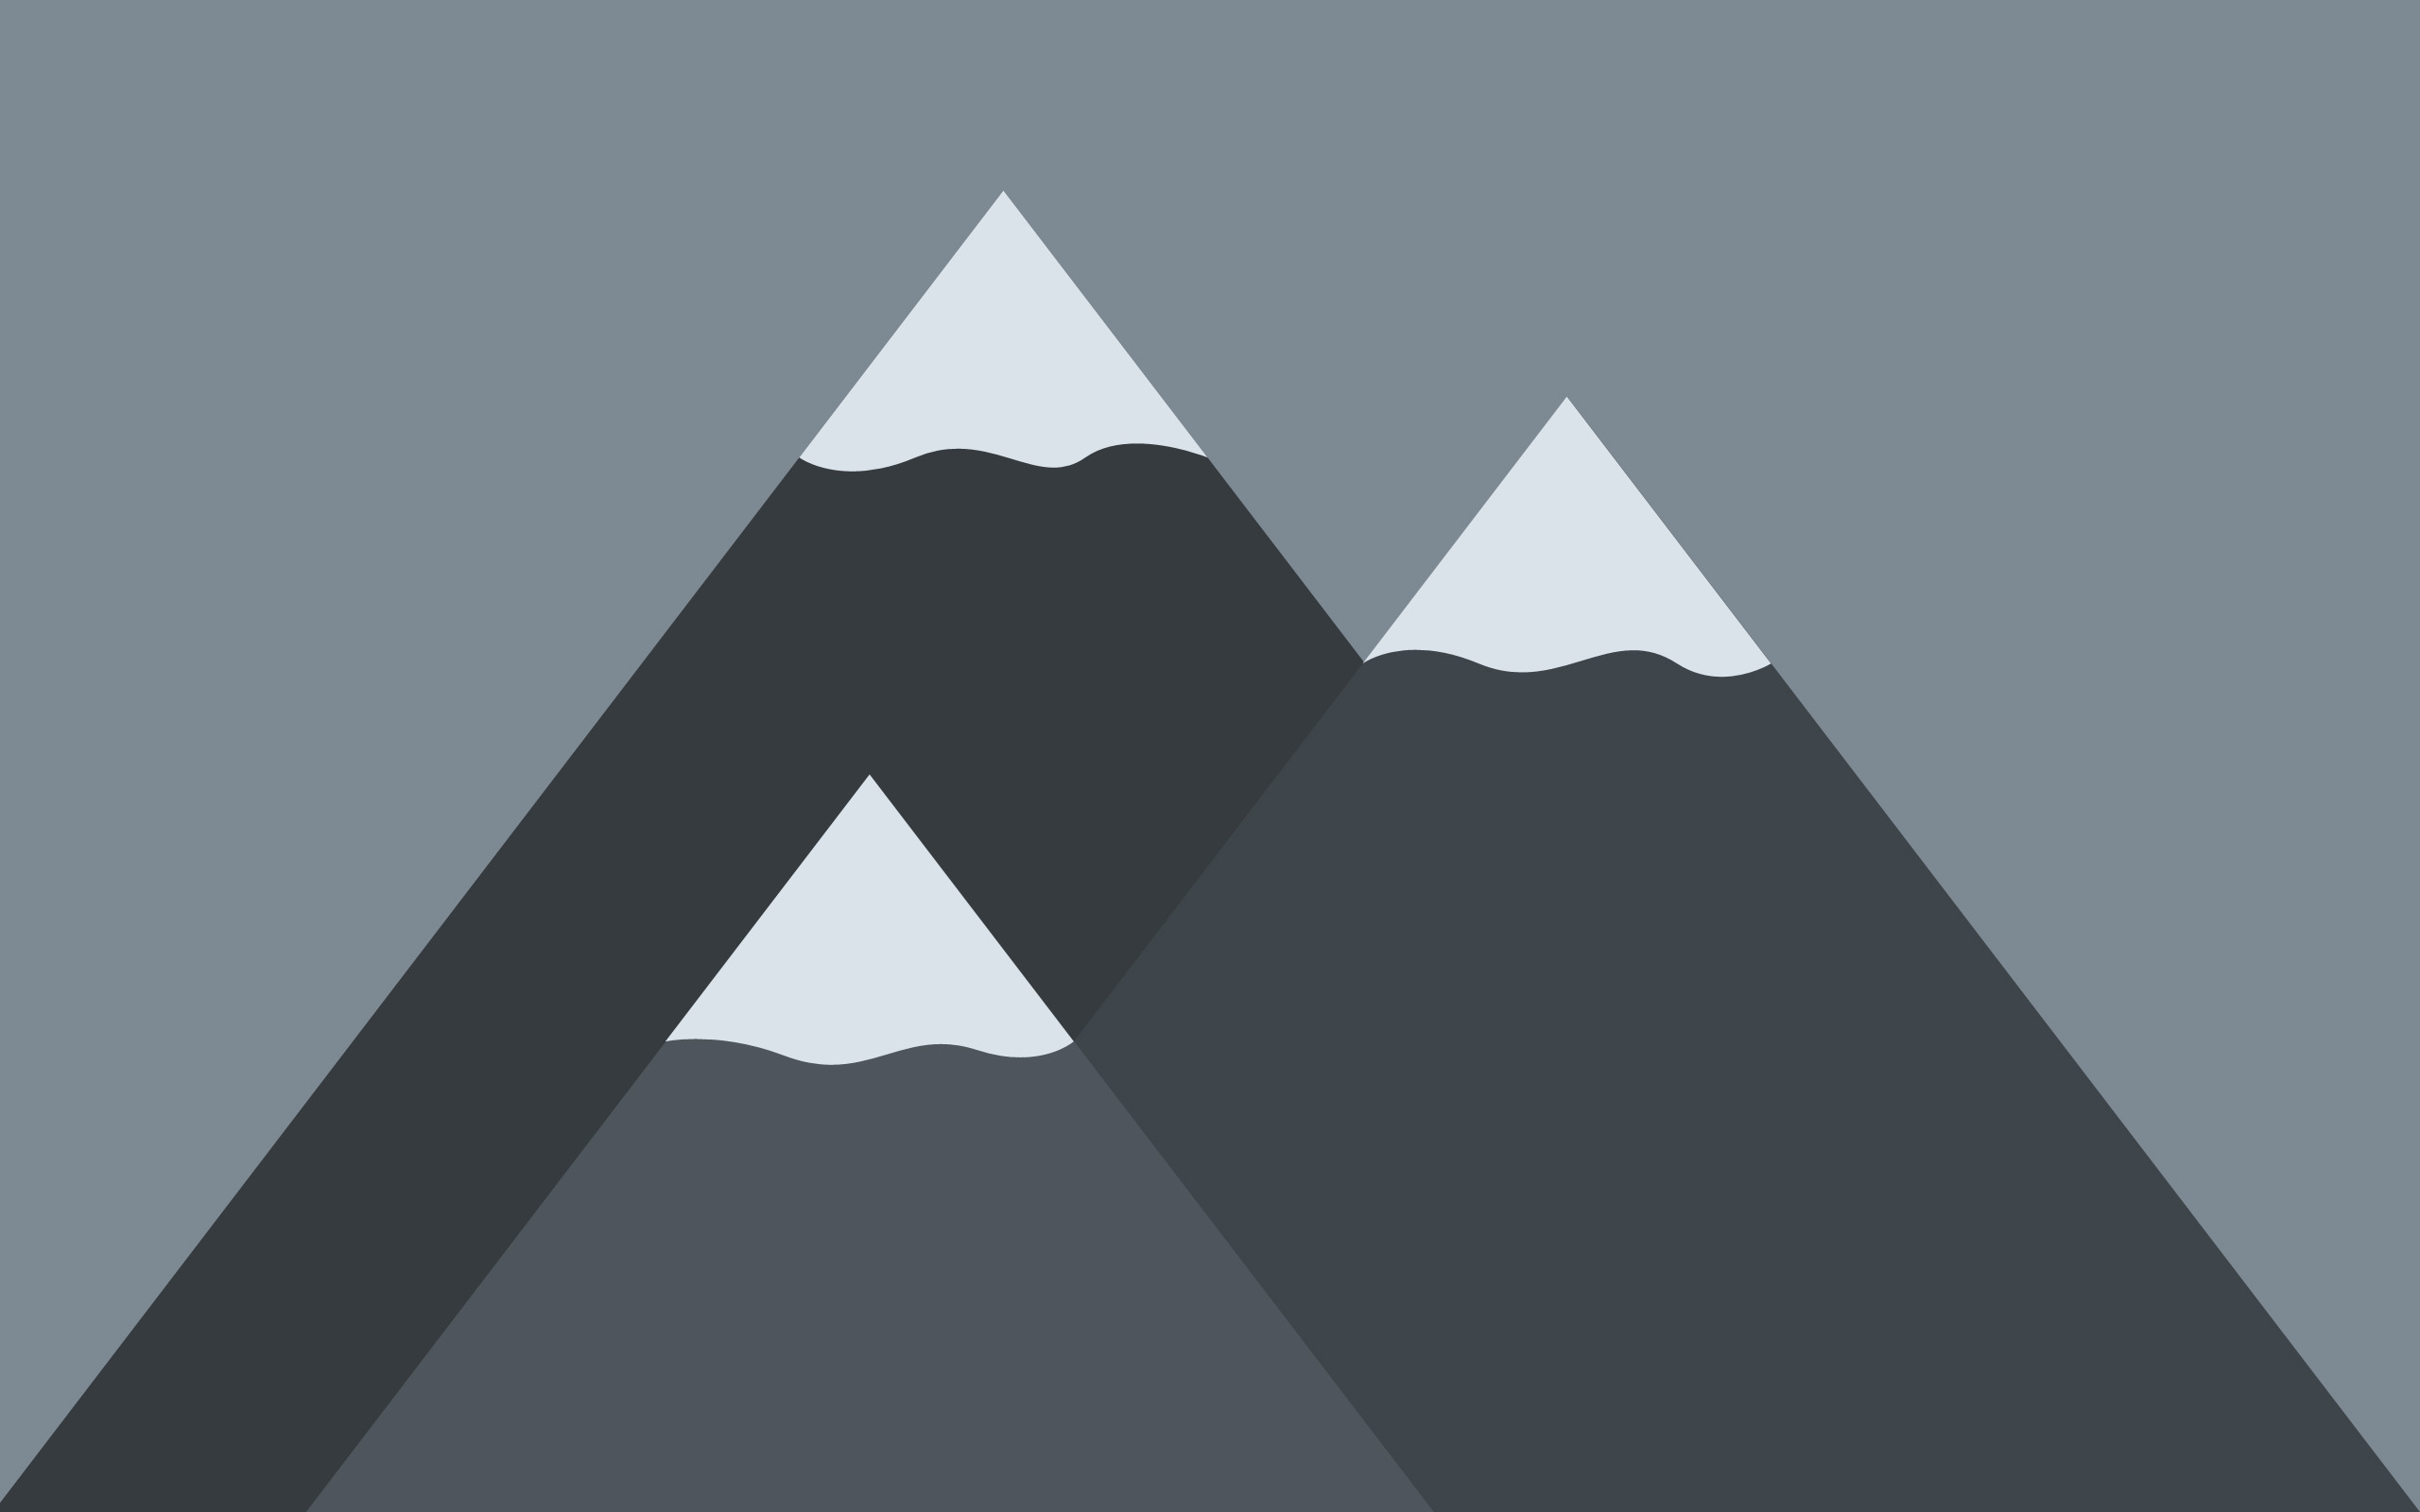 Good Wallpaper Mountain Minimalistic - mountains  You Should Have_908062.jpg